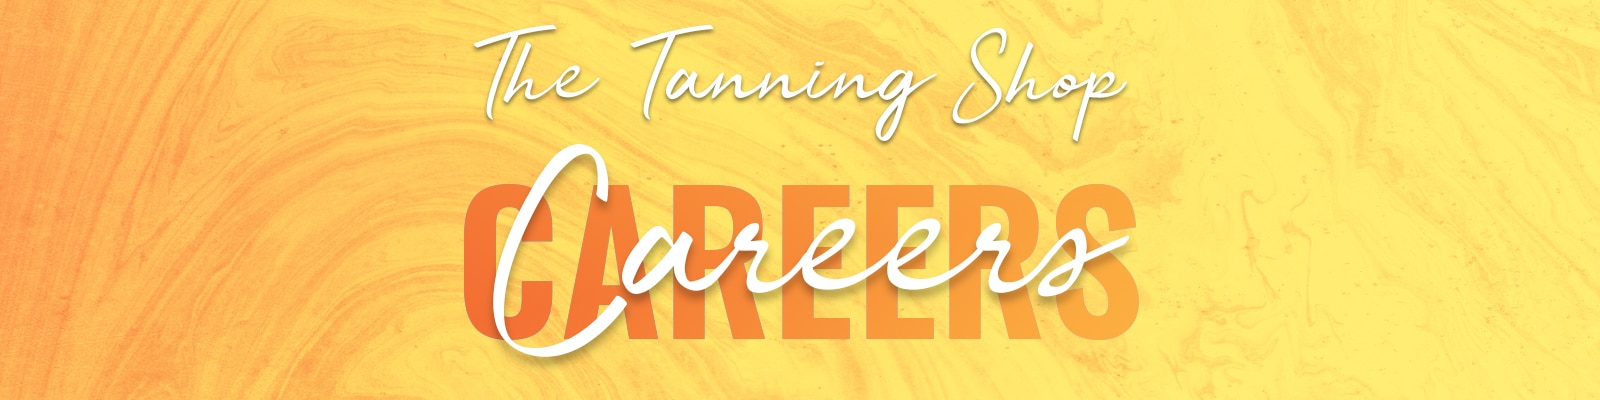 Careers Application Form - The Tanning Shop